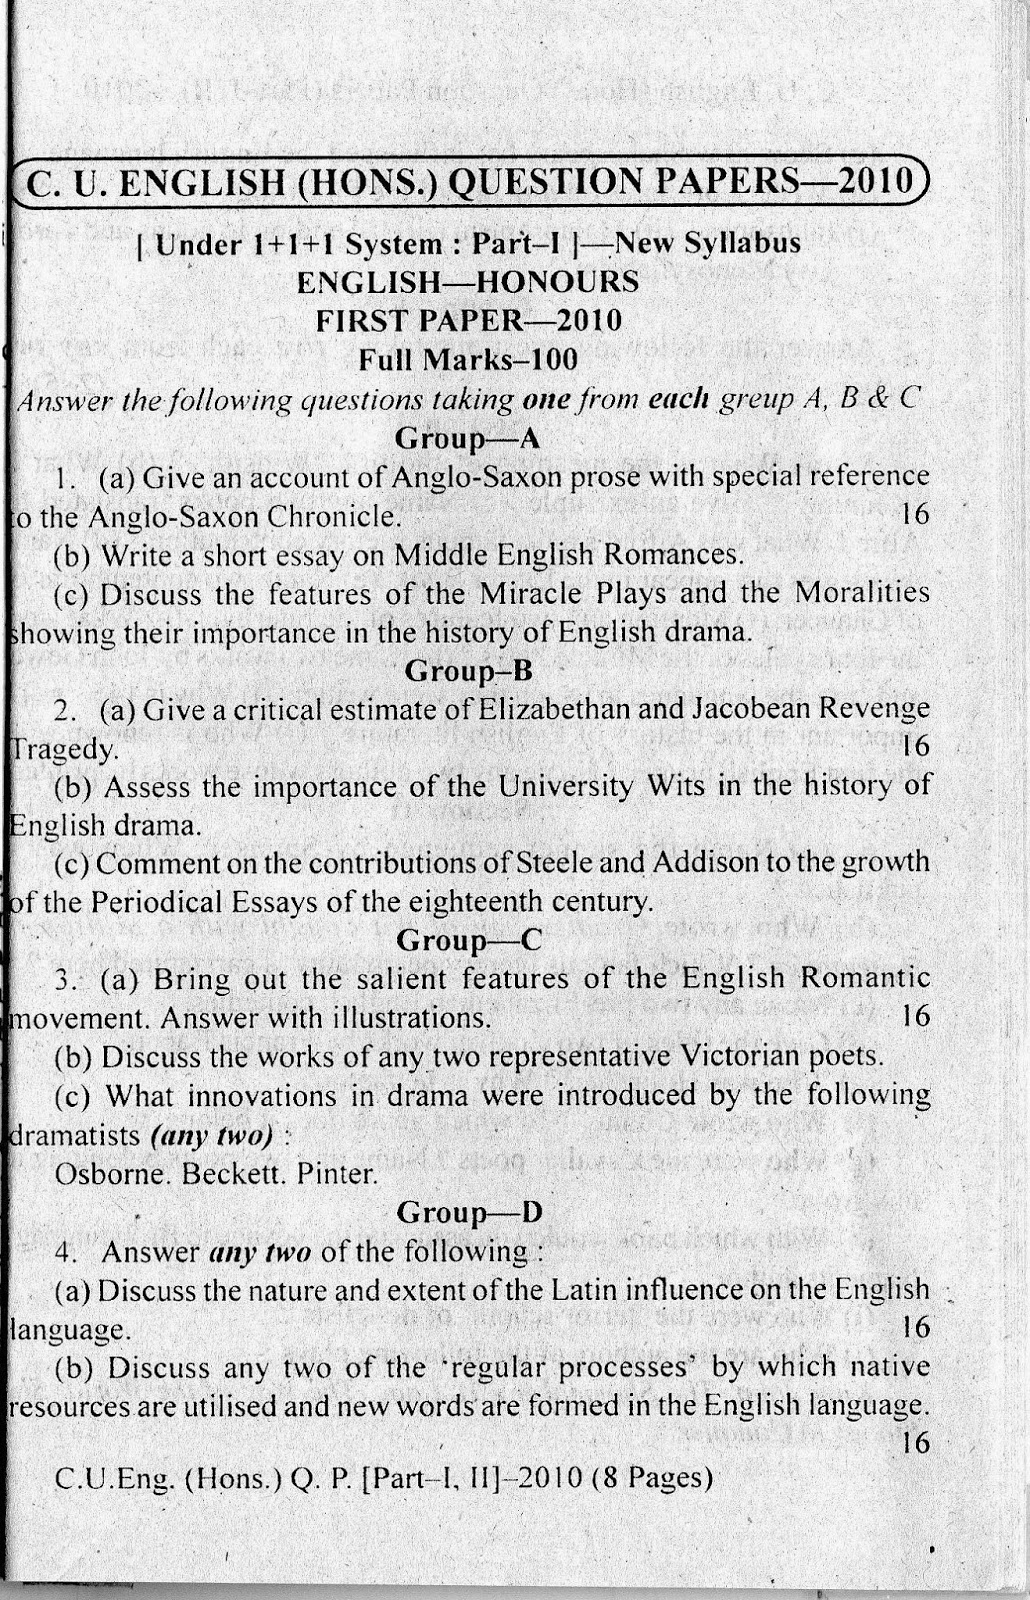 C U  ENGLISH HONOURS QUESTION PAPER 2010 [First Paper] ~ The Wise